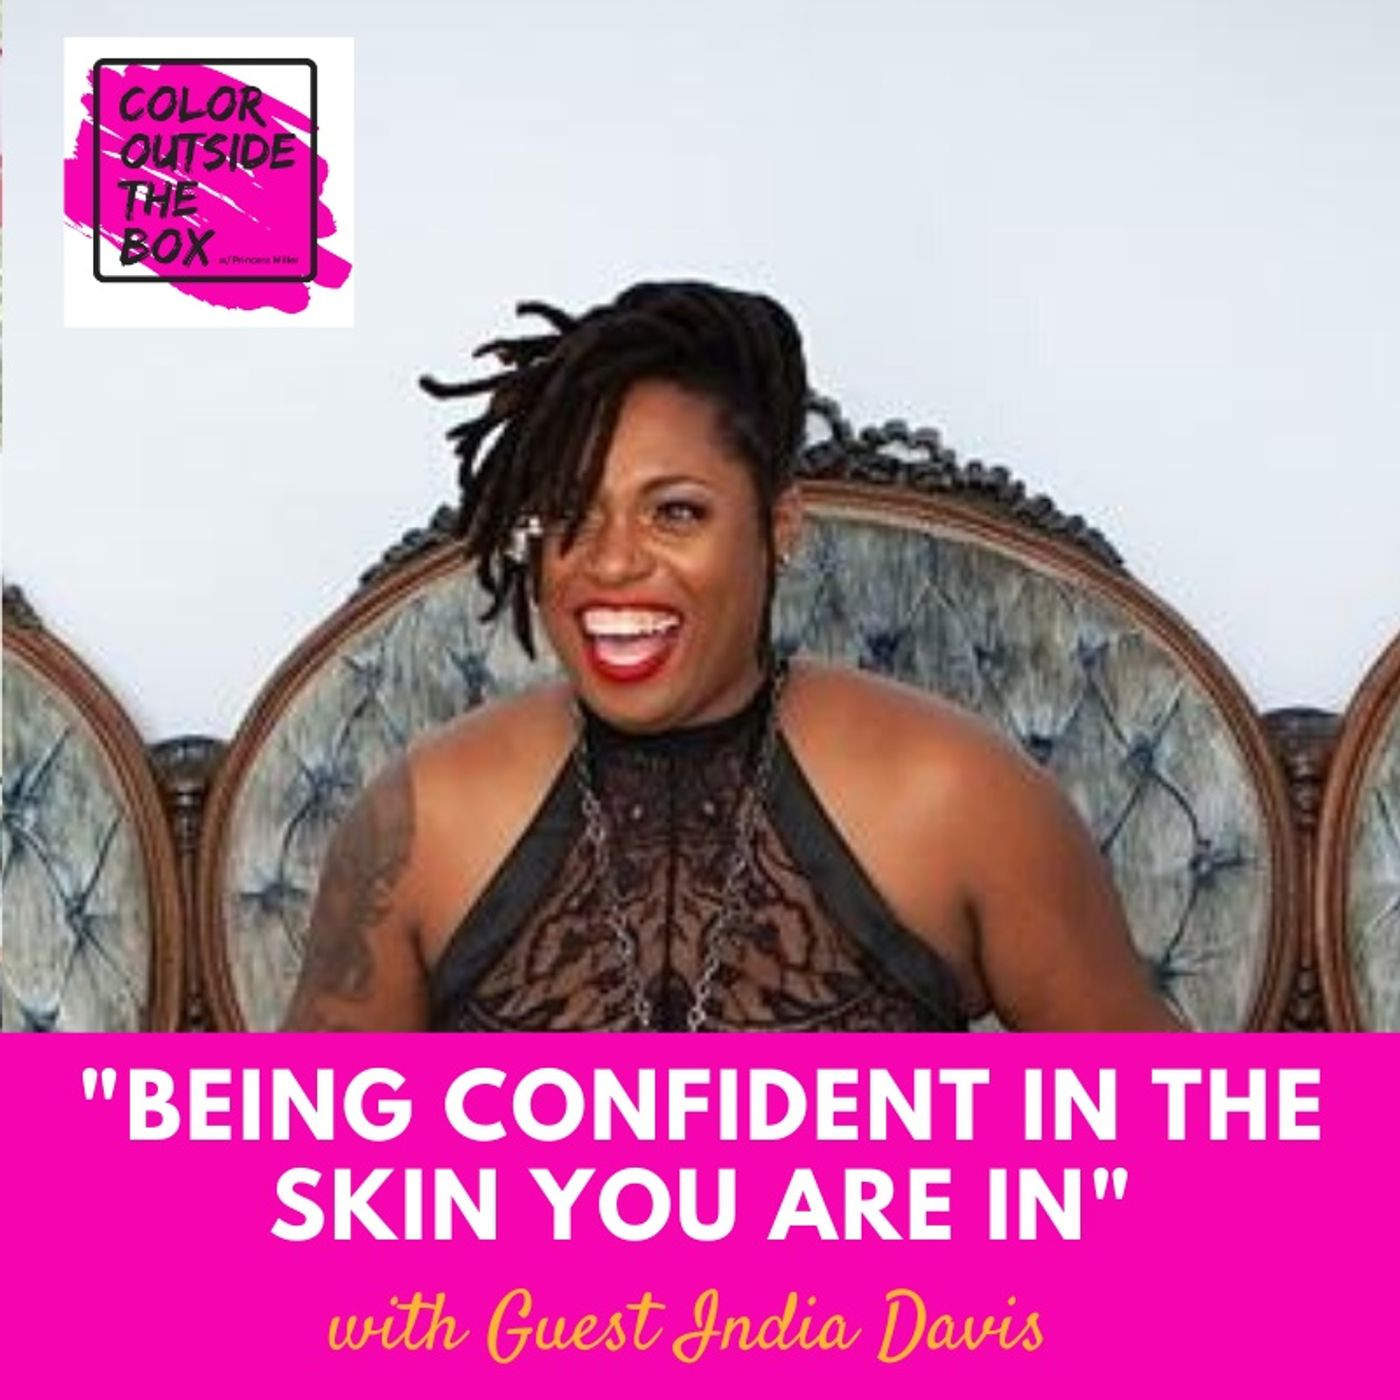 Being Confident in the Skin You Are In with Guest India Davis